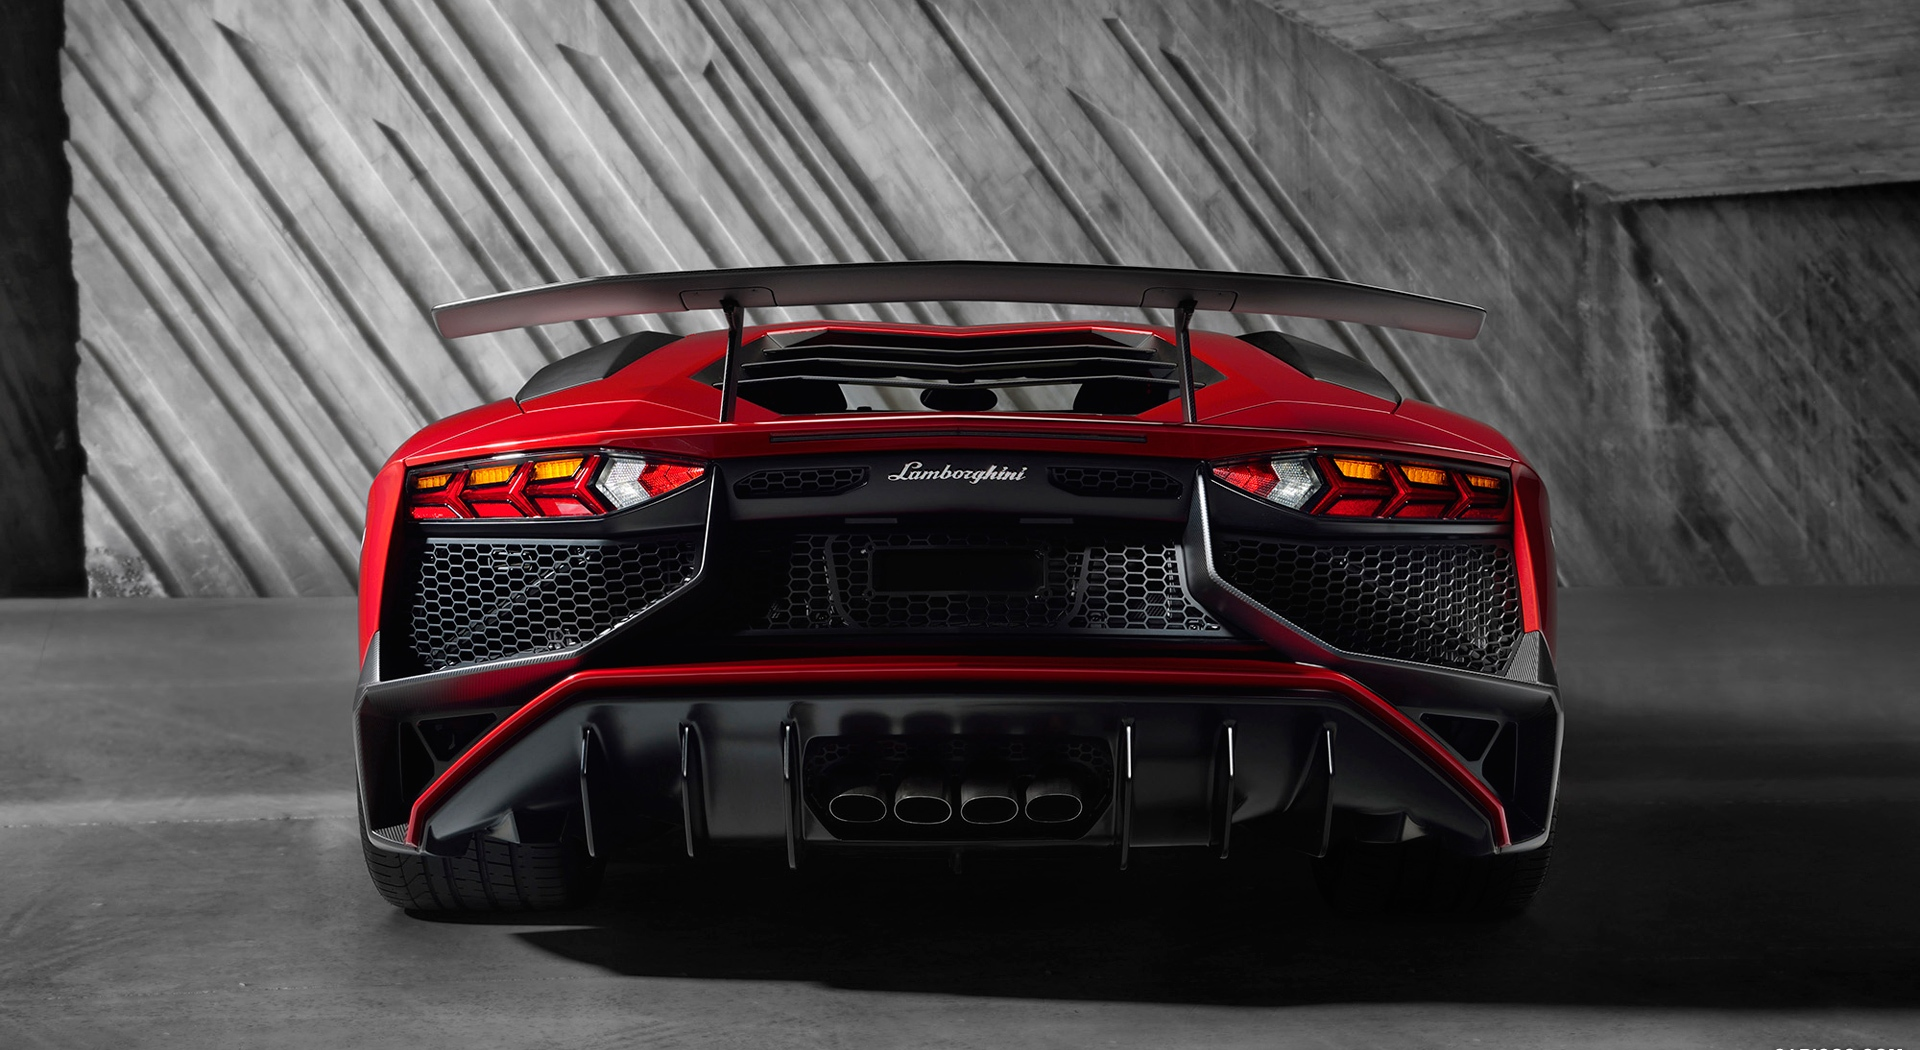 lamborghini aventador superveloce HD red